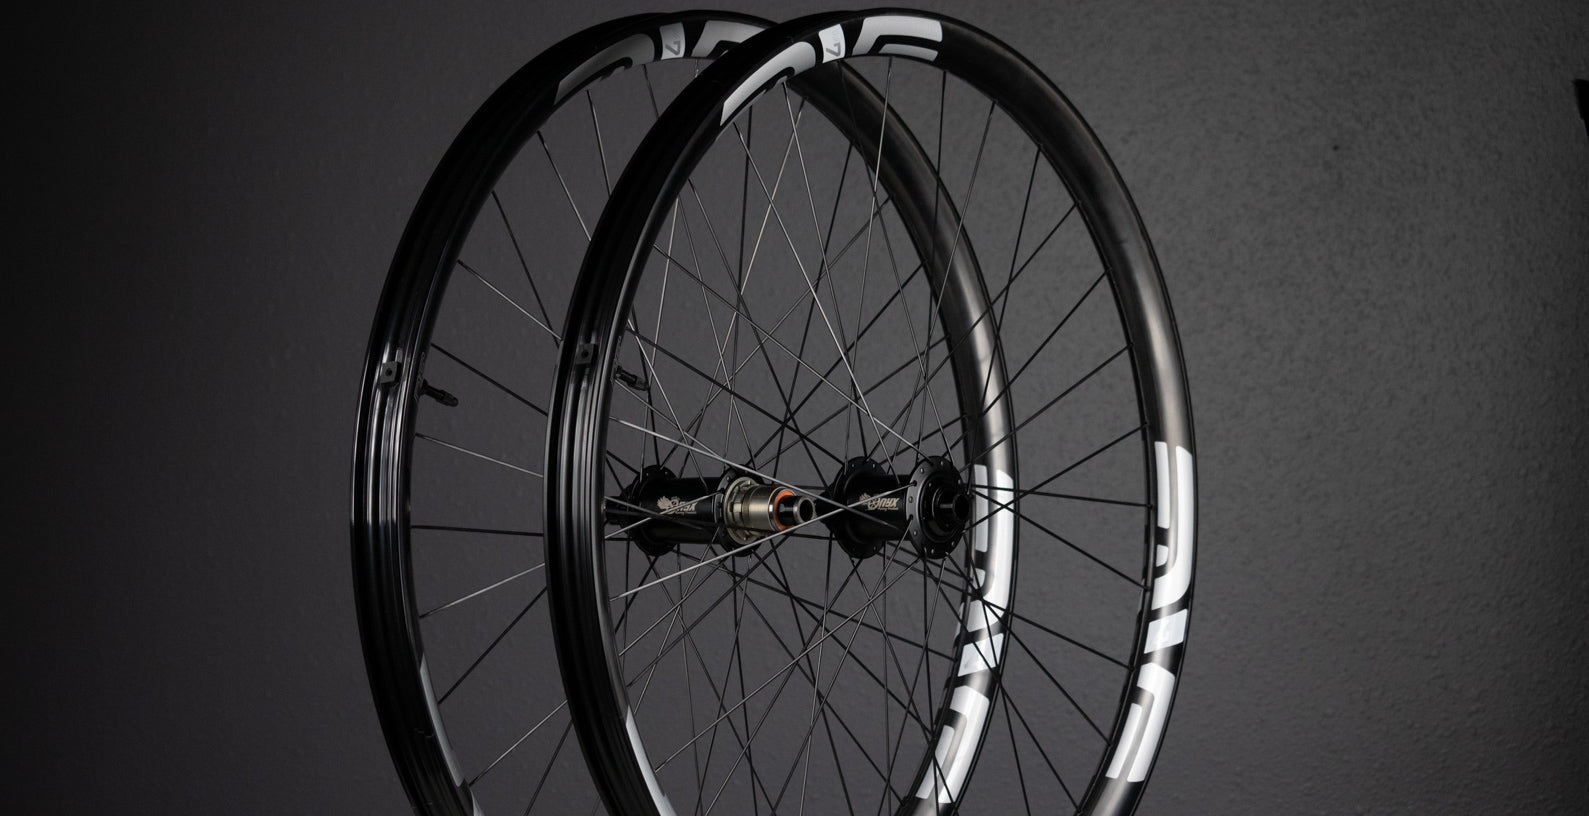 Wheel Build Of The Week: ENVE M730 / ONYX